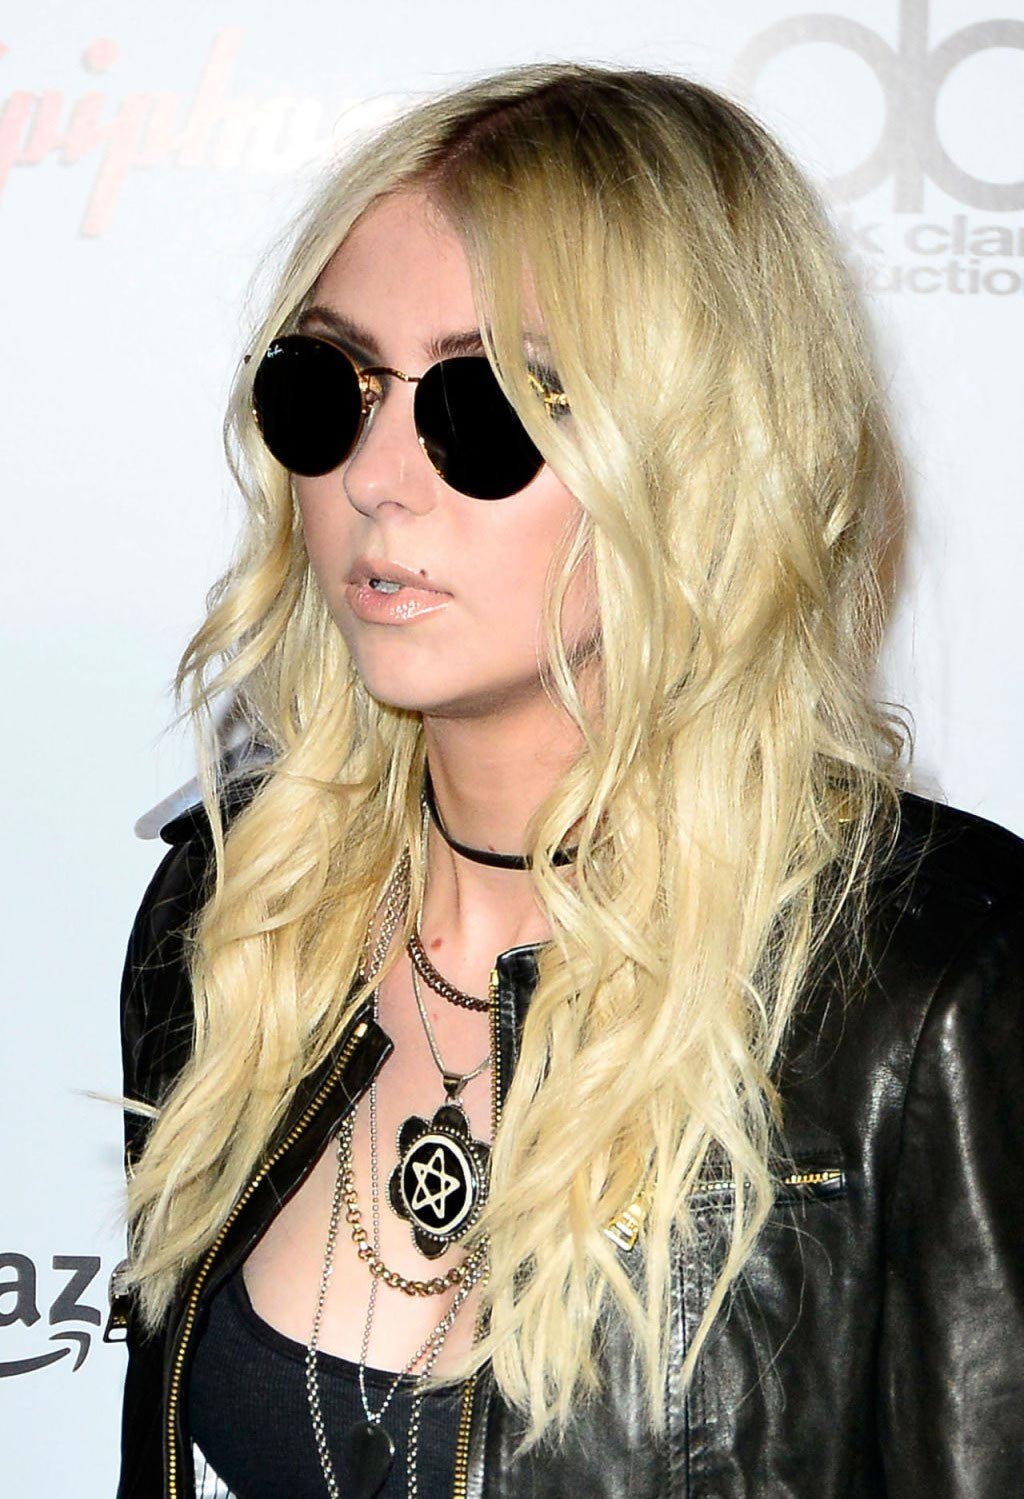 Taylor Momsen Performimg at The Limelight in Milan (Italy ... |Taylor Momsen 2014